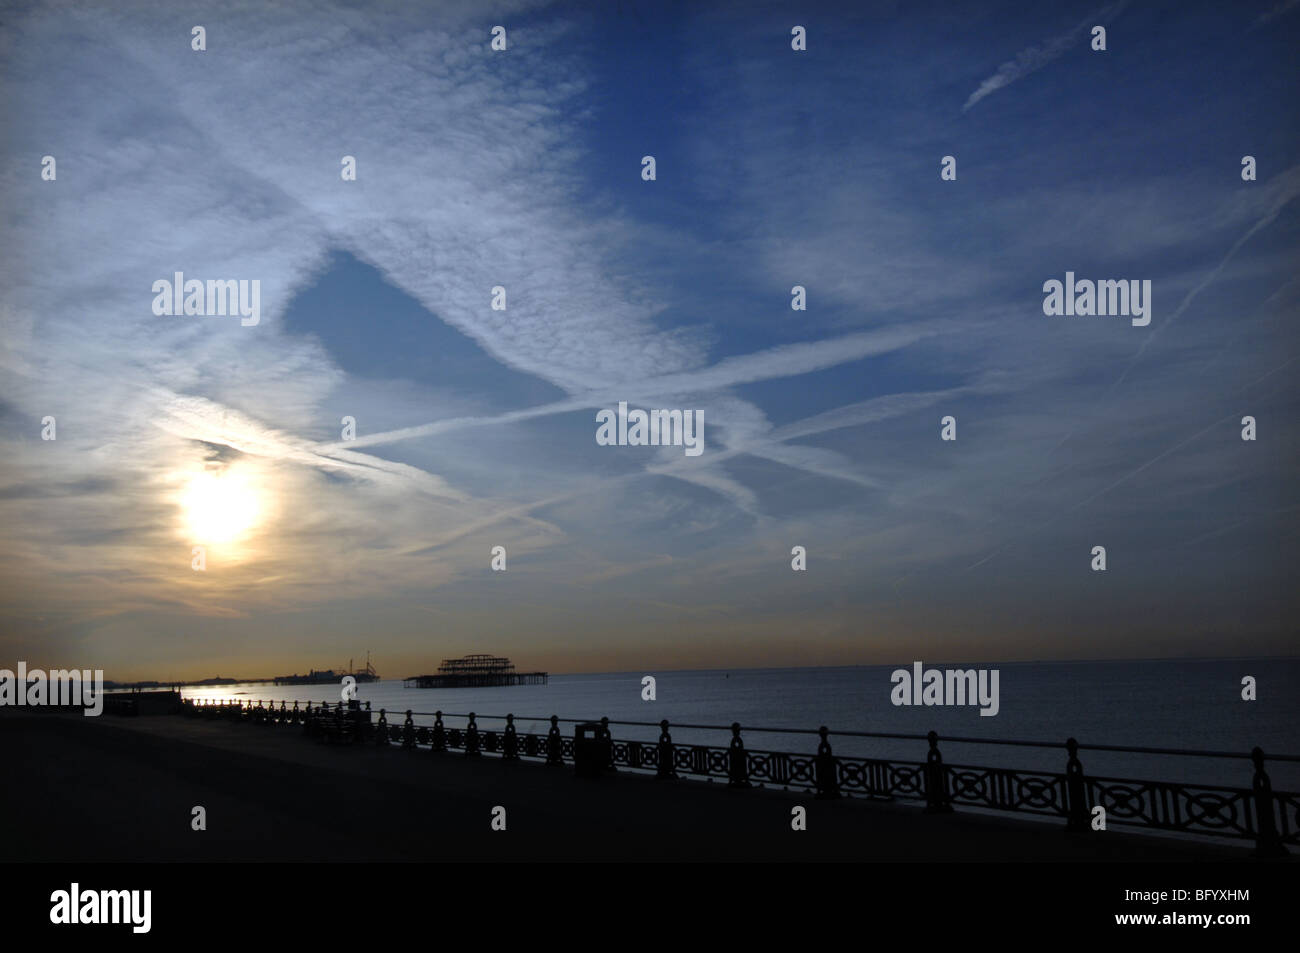 Sunrise on Brighton seafront with jet streaks in sky and the West Pier  silhouetted in the distance. - Stock Image